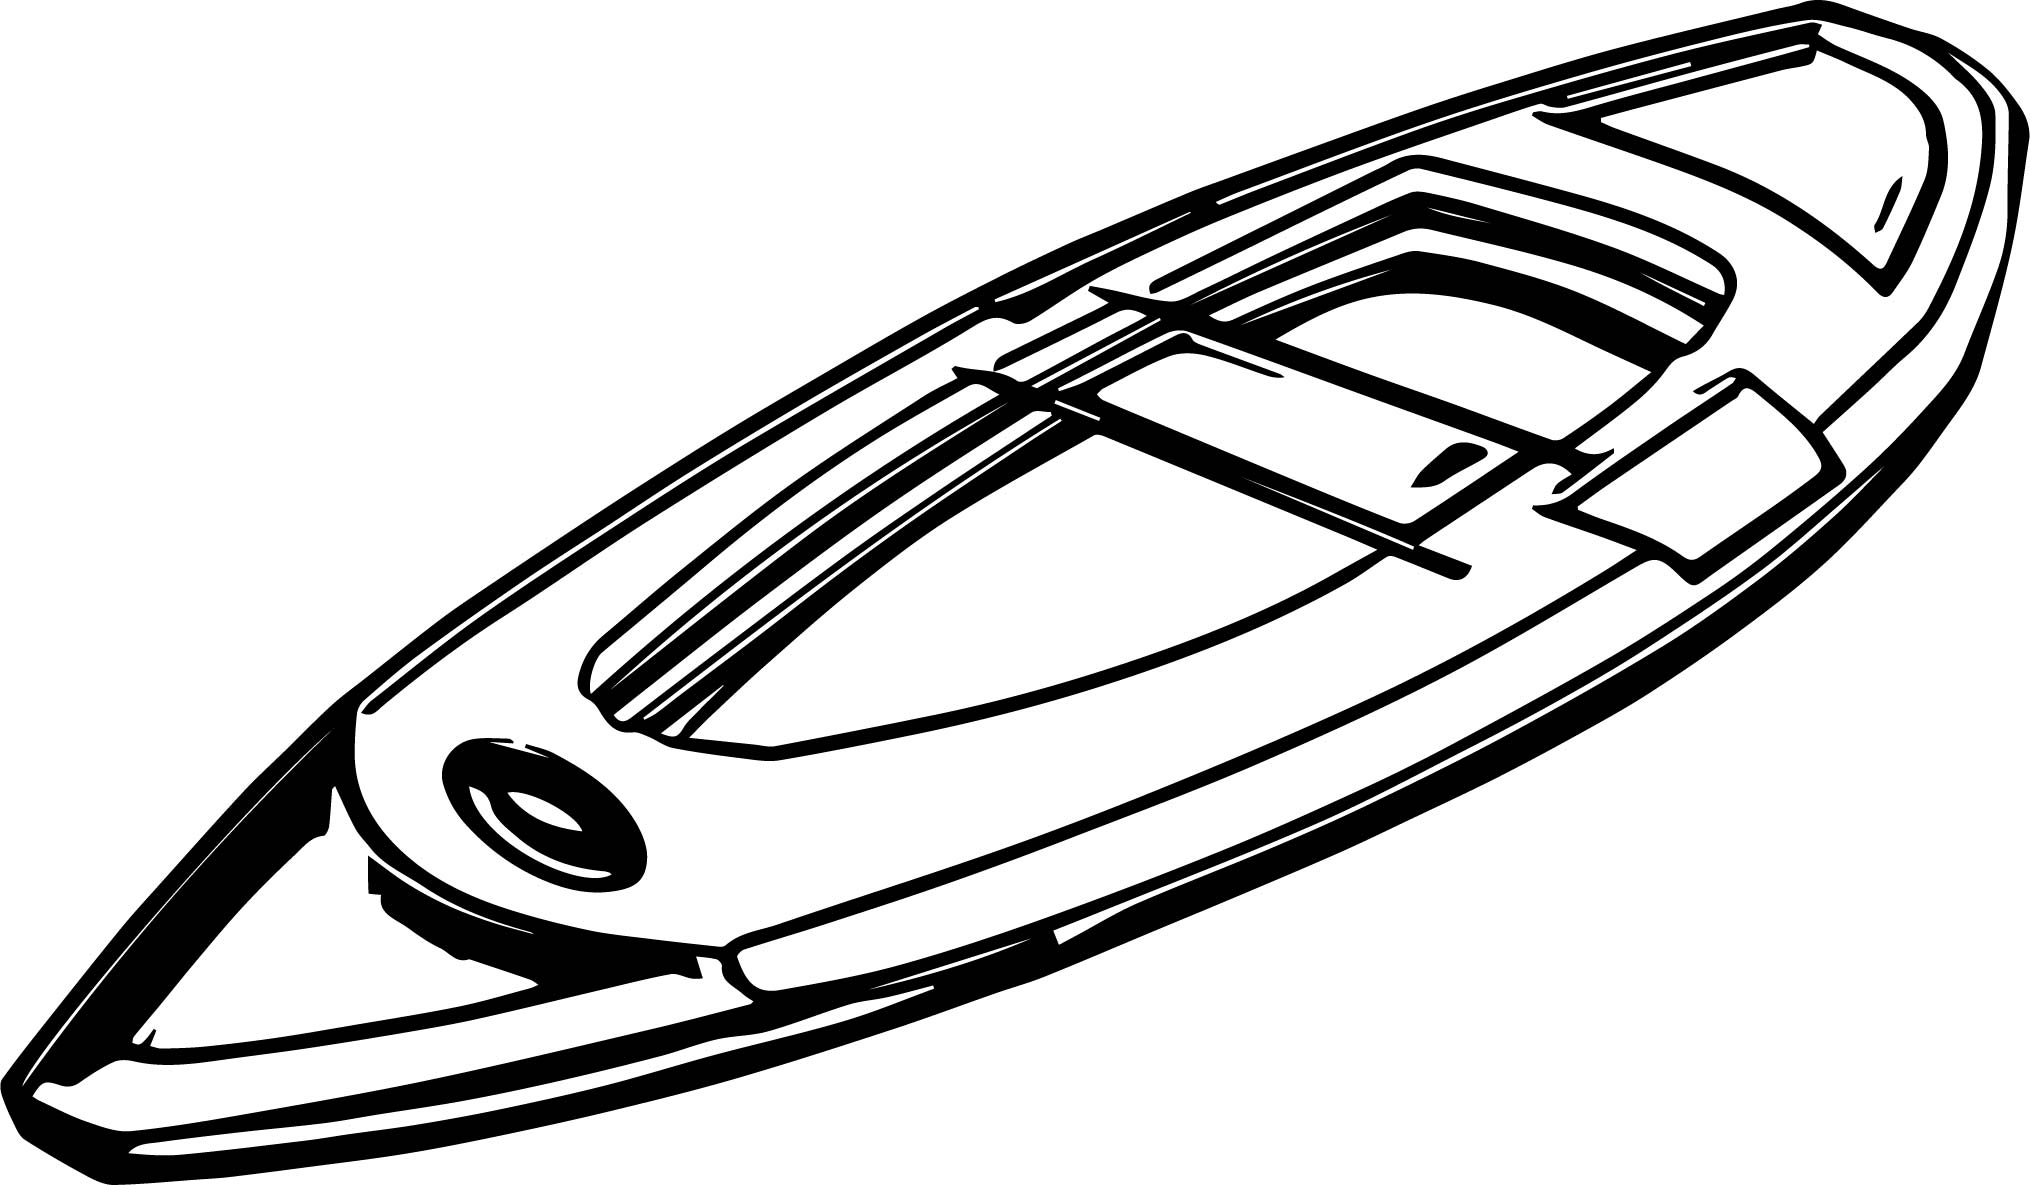 Any Canoe Coloring Page